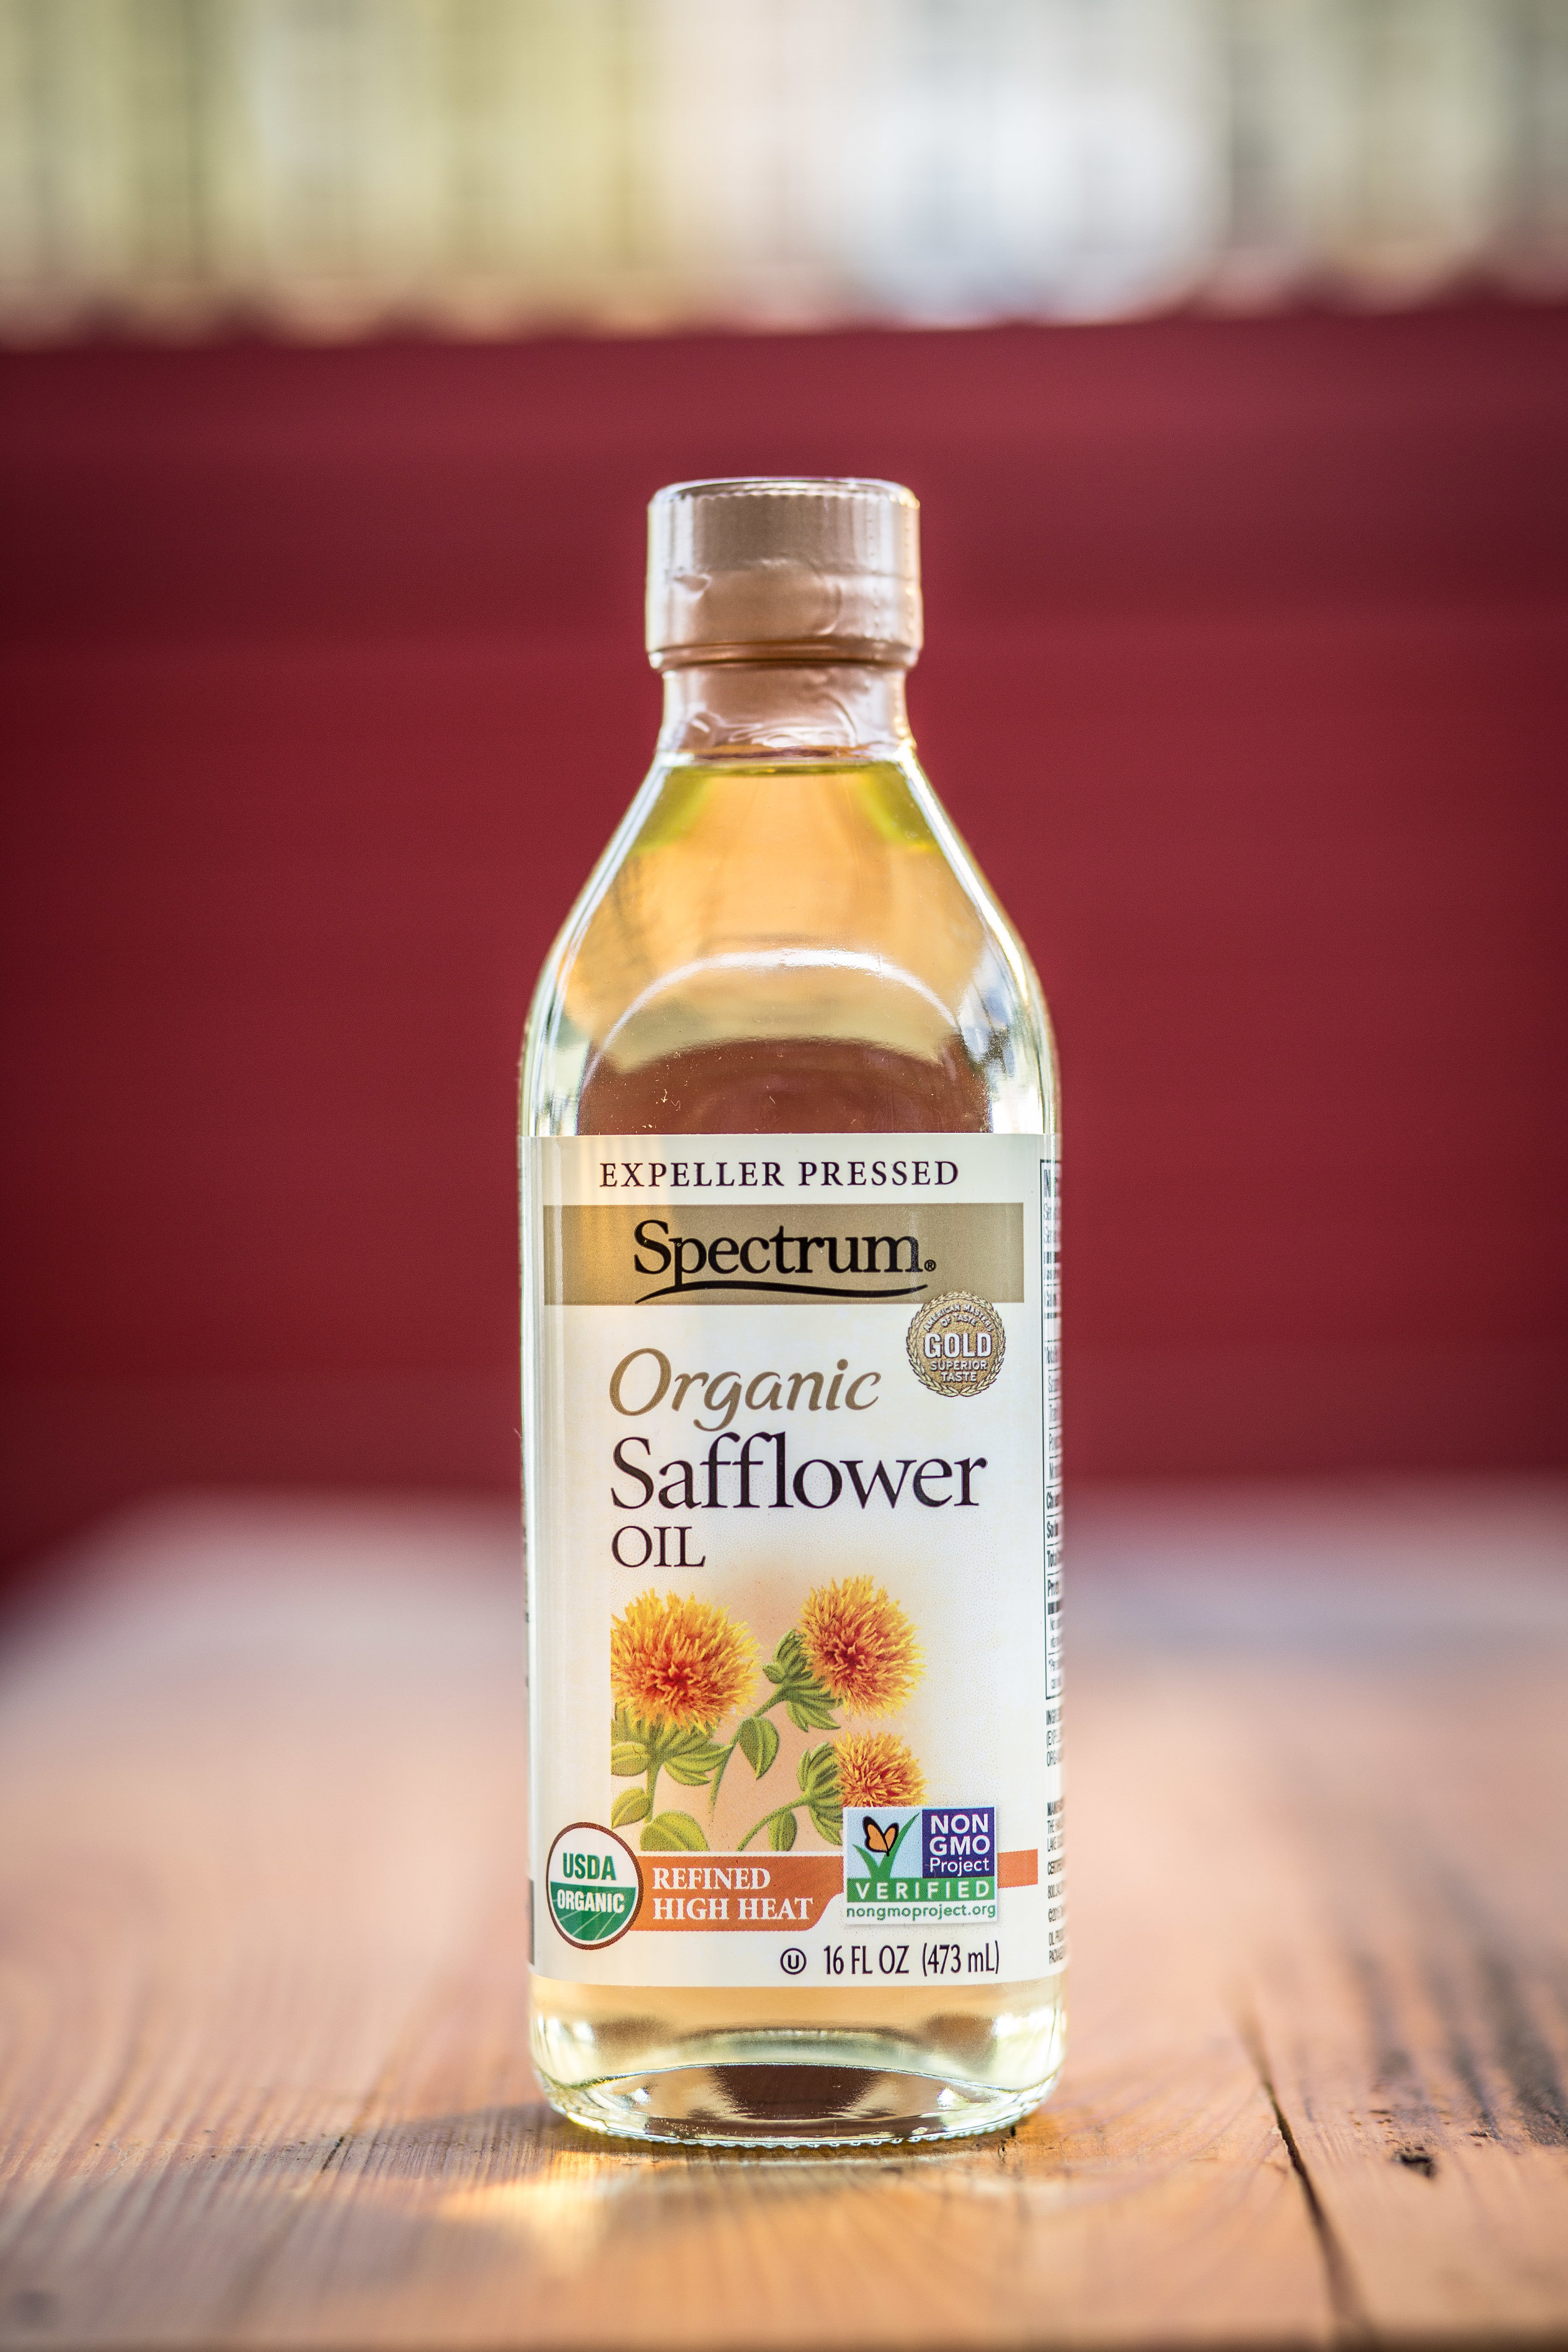 Use Safflower Oil to enhance the flavors of your salads and dressings.